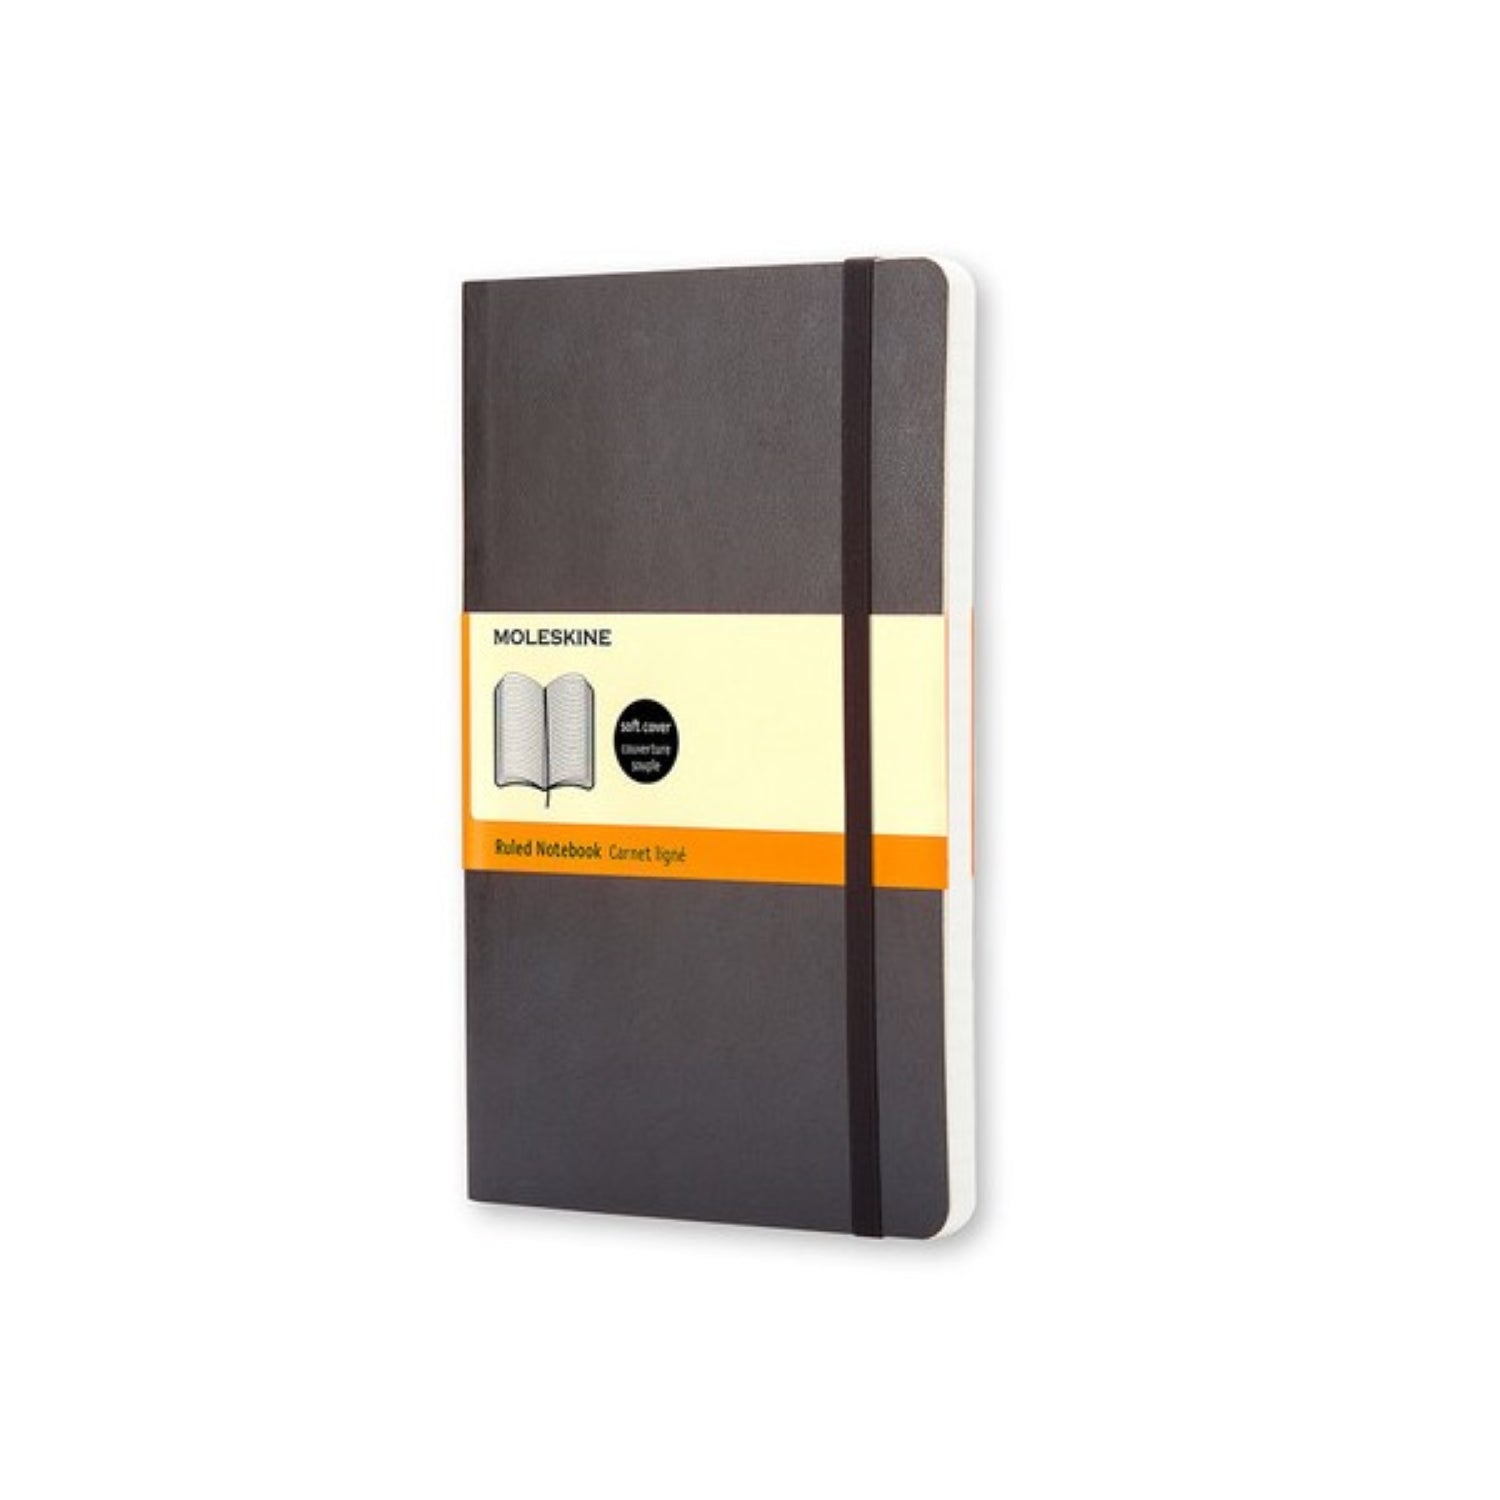 Moleskine Classic Soft Cover Notebook Pocket RULED Black